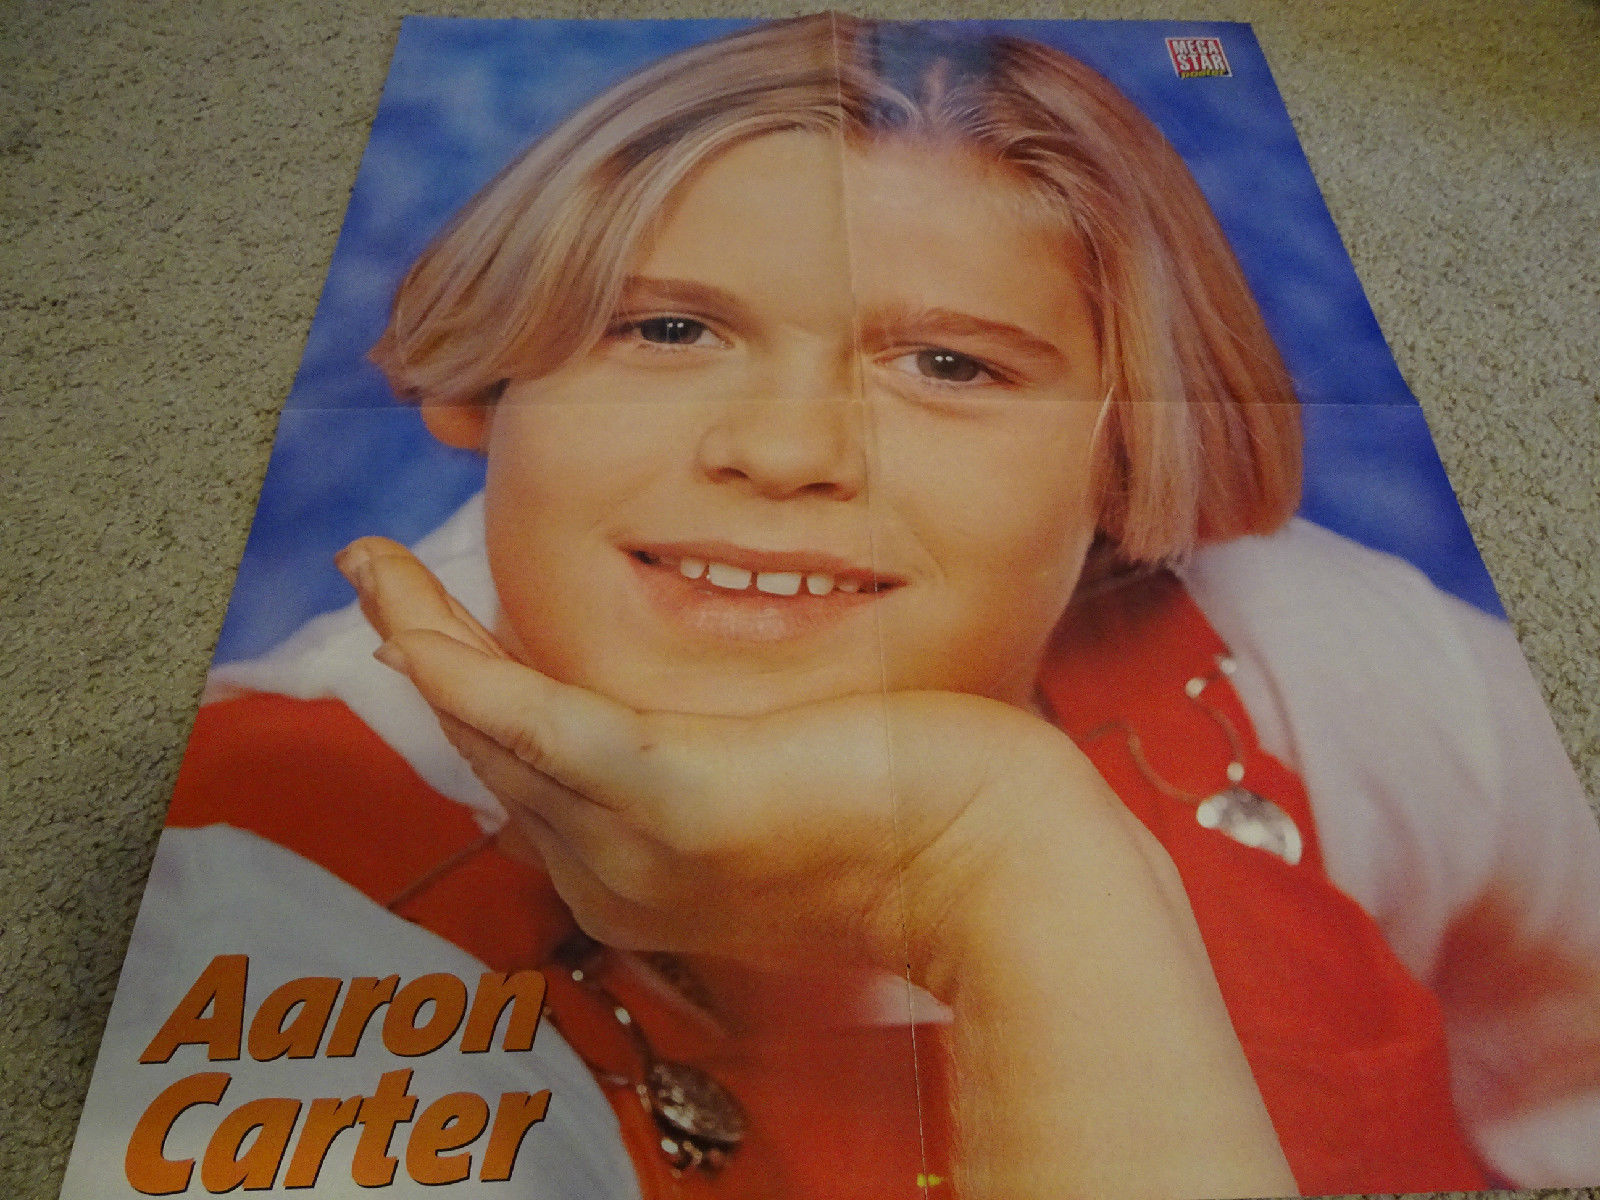 Aaron Carter teen magazine poster clippings Tiger Beat Bop